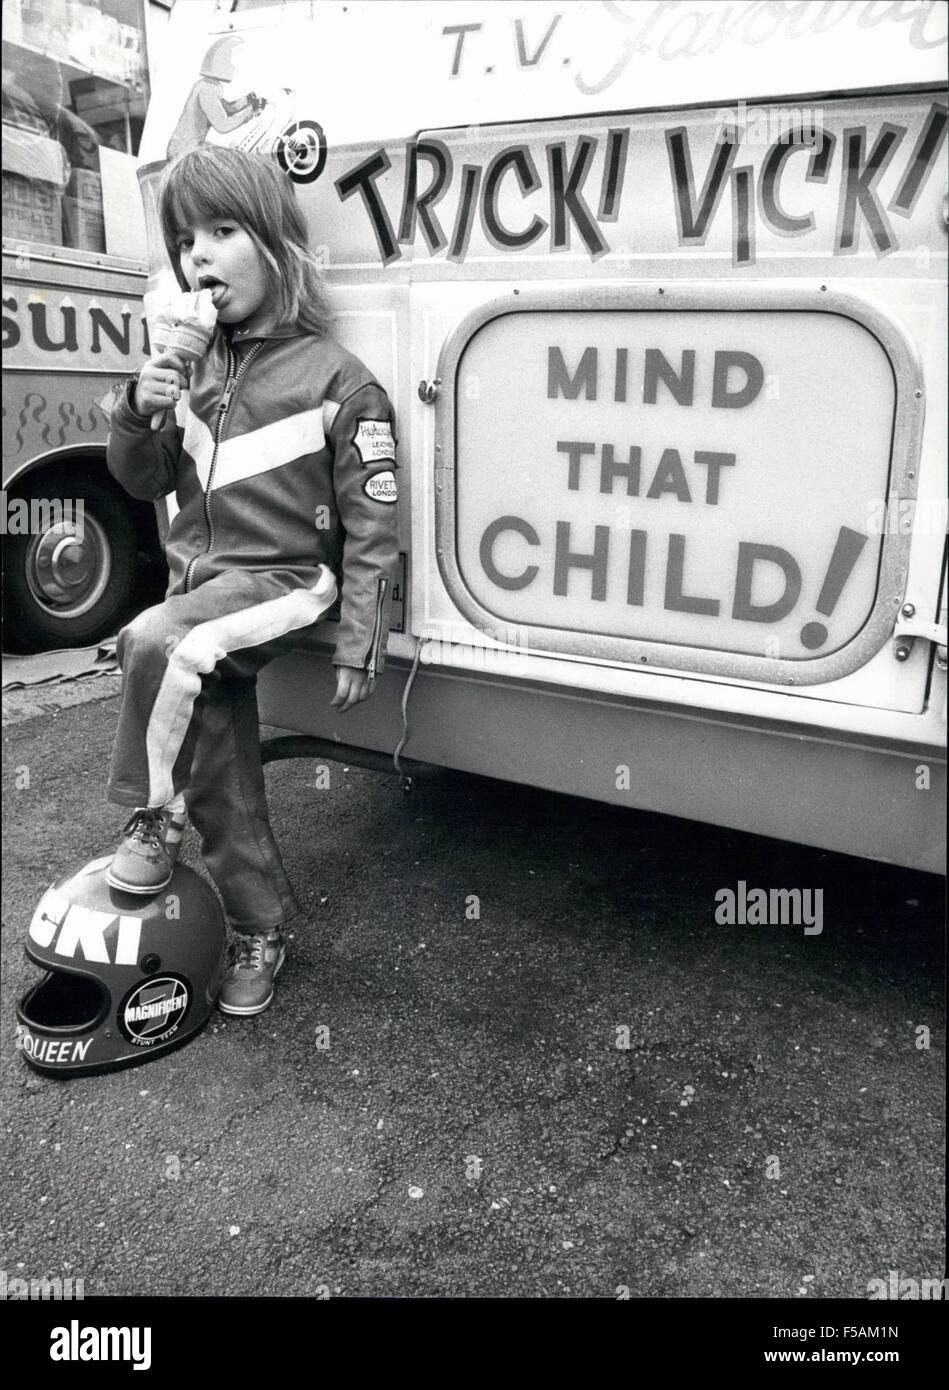 1968 - Tricky Vick is certainly ice-cool! here she is having an ice-cream from her father's ice-cream van. © - Stock Image